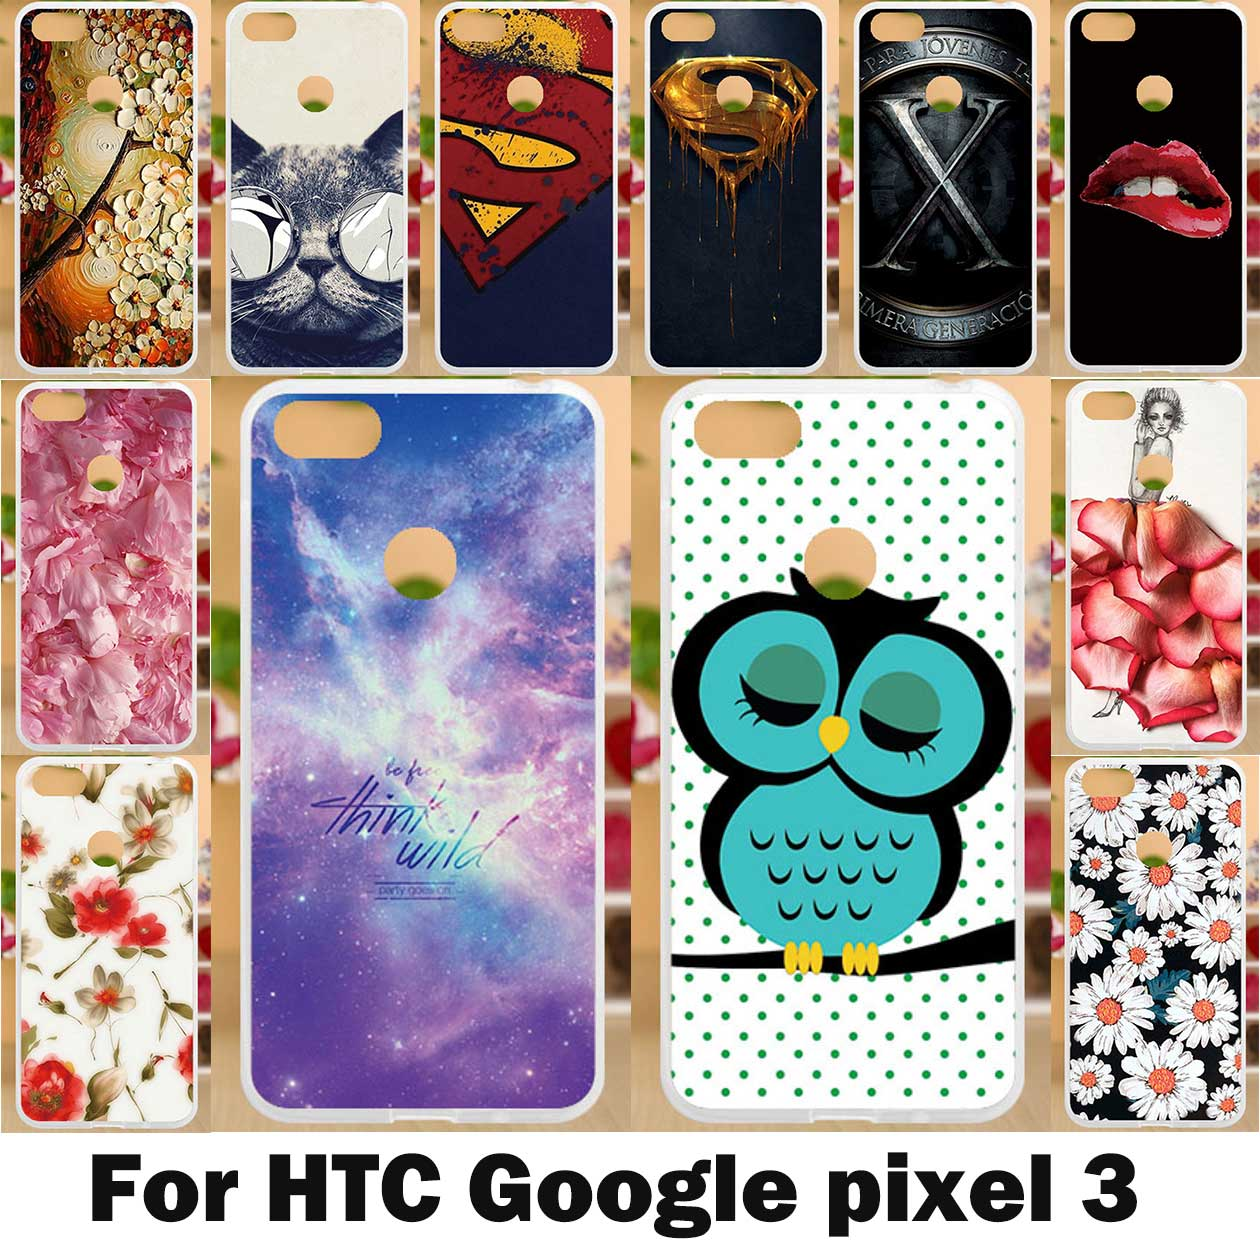 Painted Case For Google Pixel 3 Case Silicone Soft TPU Cases For HTC Google Pixel3 Cover Coque Cute Animal Flowers Bags